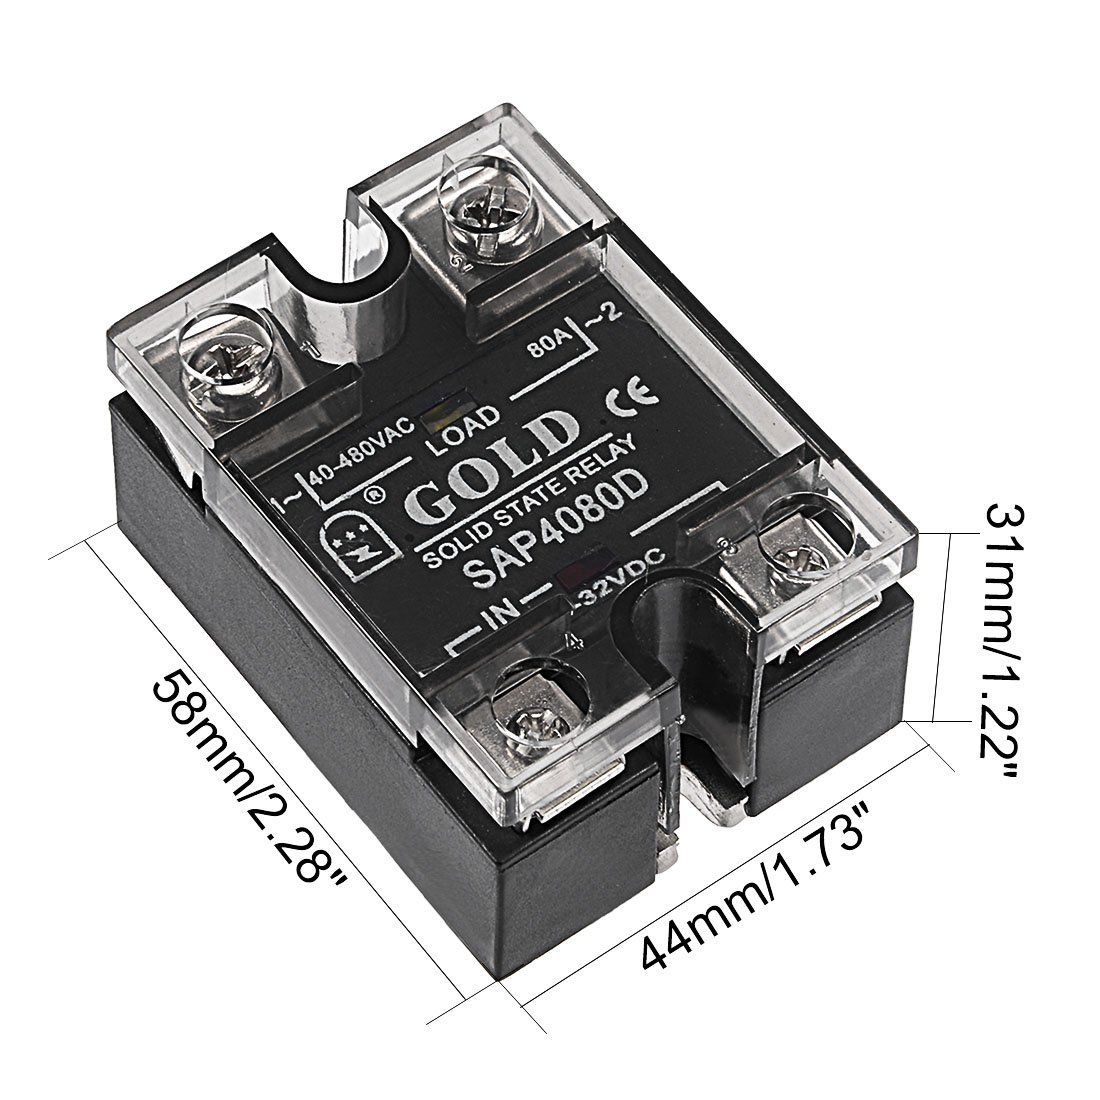 Uxcell Sap4080d 3 32vdc To 40 480vac 80a Single Phase Solid State Relay 220v Ac Module Dc Home Improvement